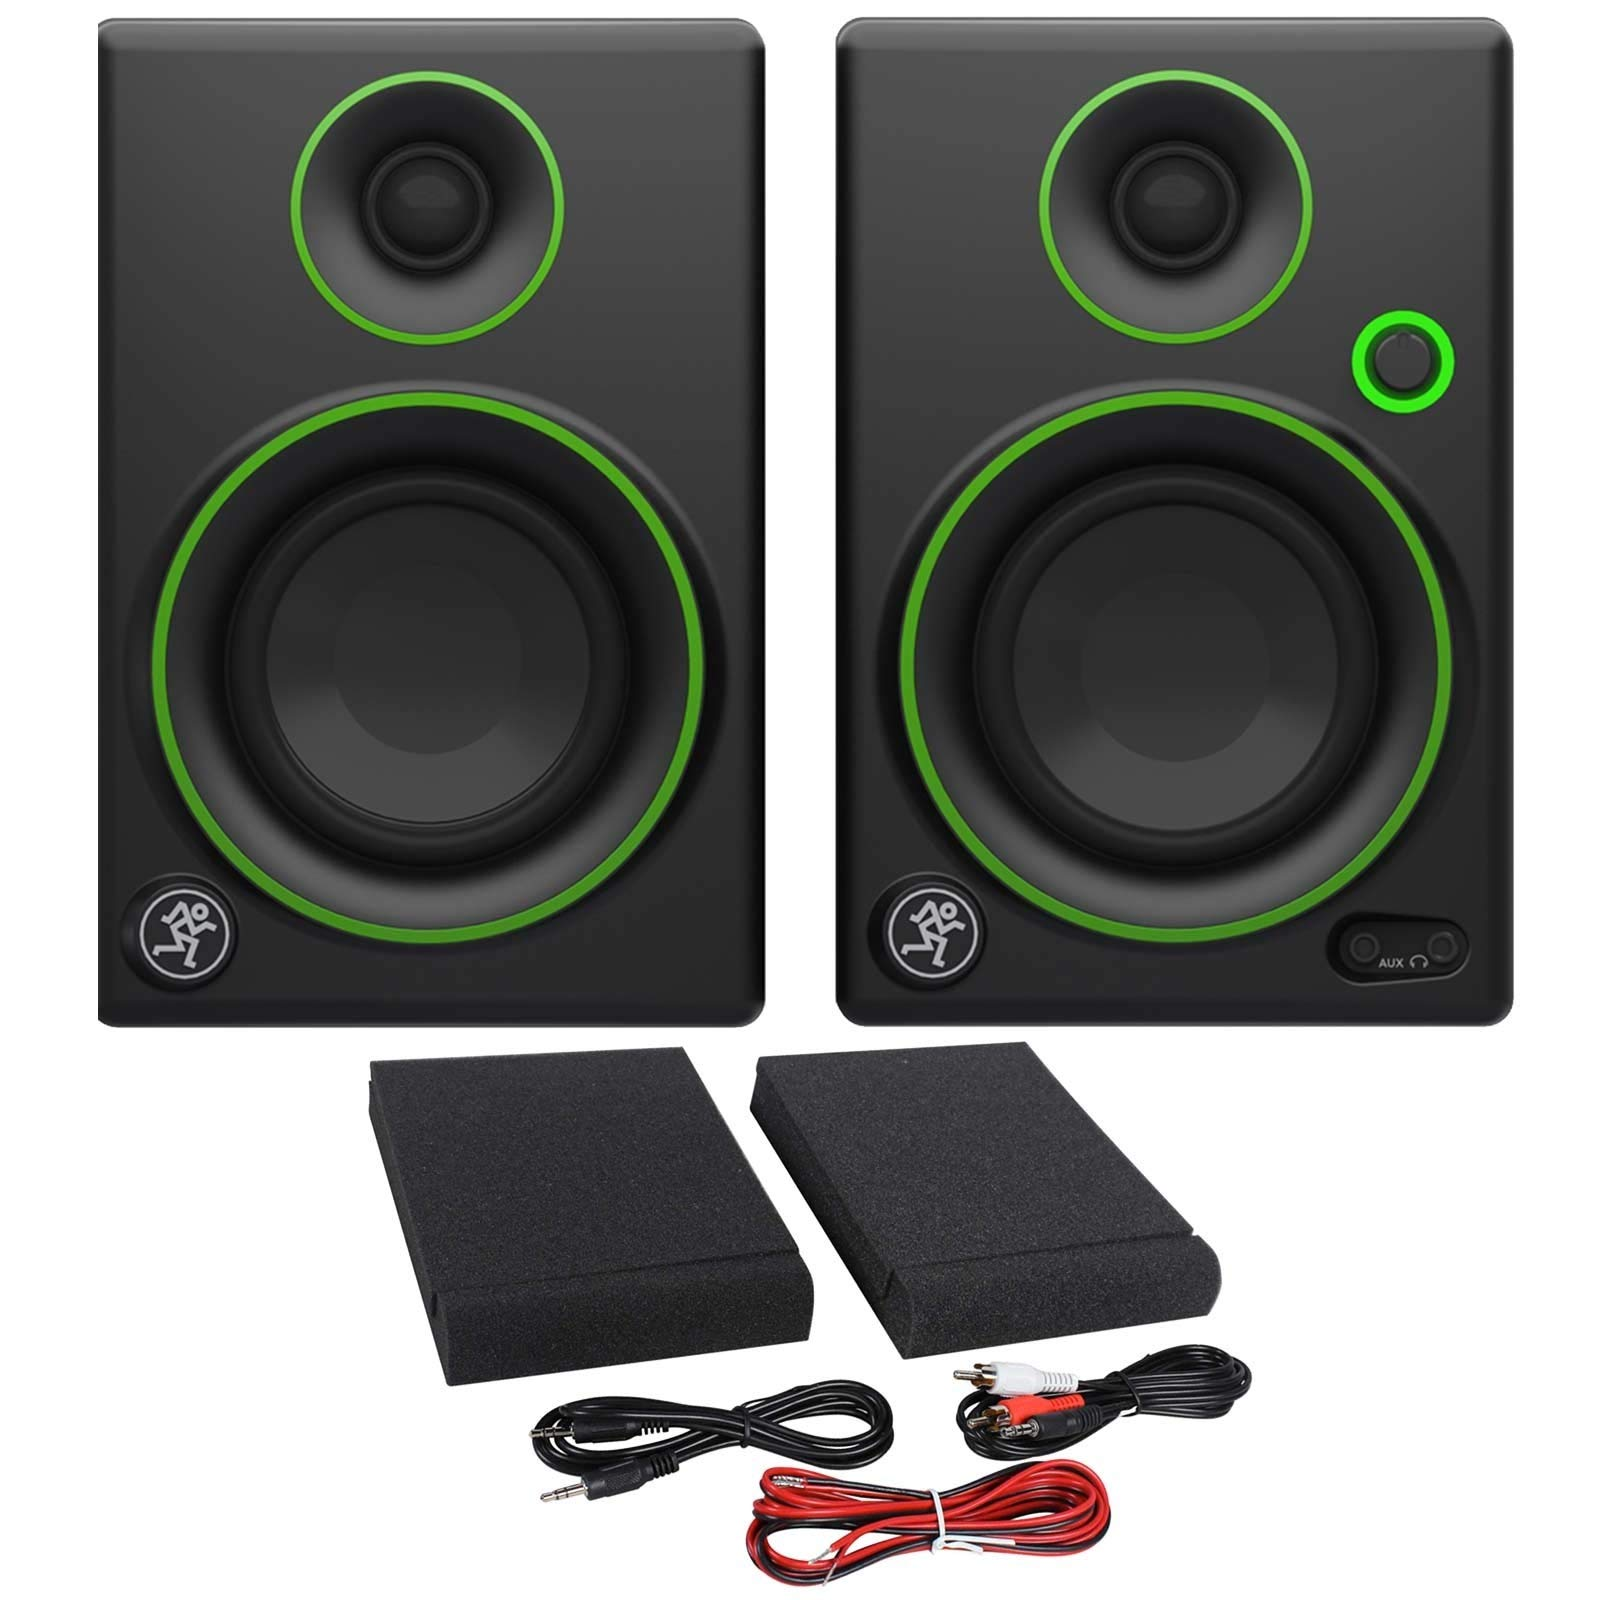 Mackie CR3 3'' Creative Reference Multimedia Monitors Bundle with Mackie Onyx Artist 1-2 USB Audio Interface and Tascam TH-02 Closed Back Studio Headphones by Circuit City (Image #6)